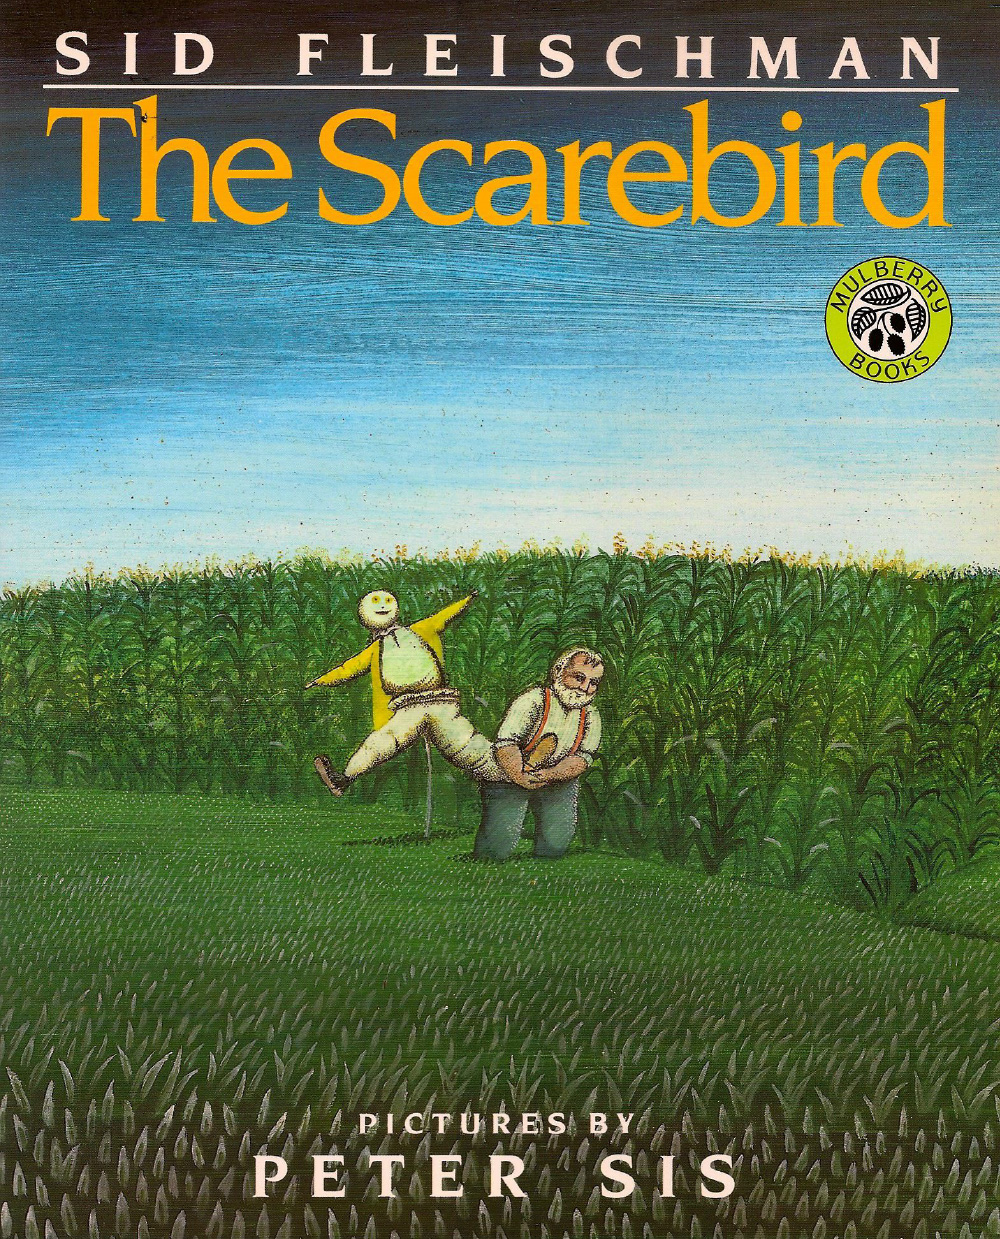 The Scarebird - Illustrated by Peter Sis Redbook Children's Picturebook Award Lonesome John's only friend is a scruffy scarecrow--until a stranger comes along.